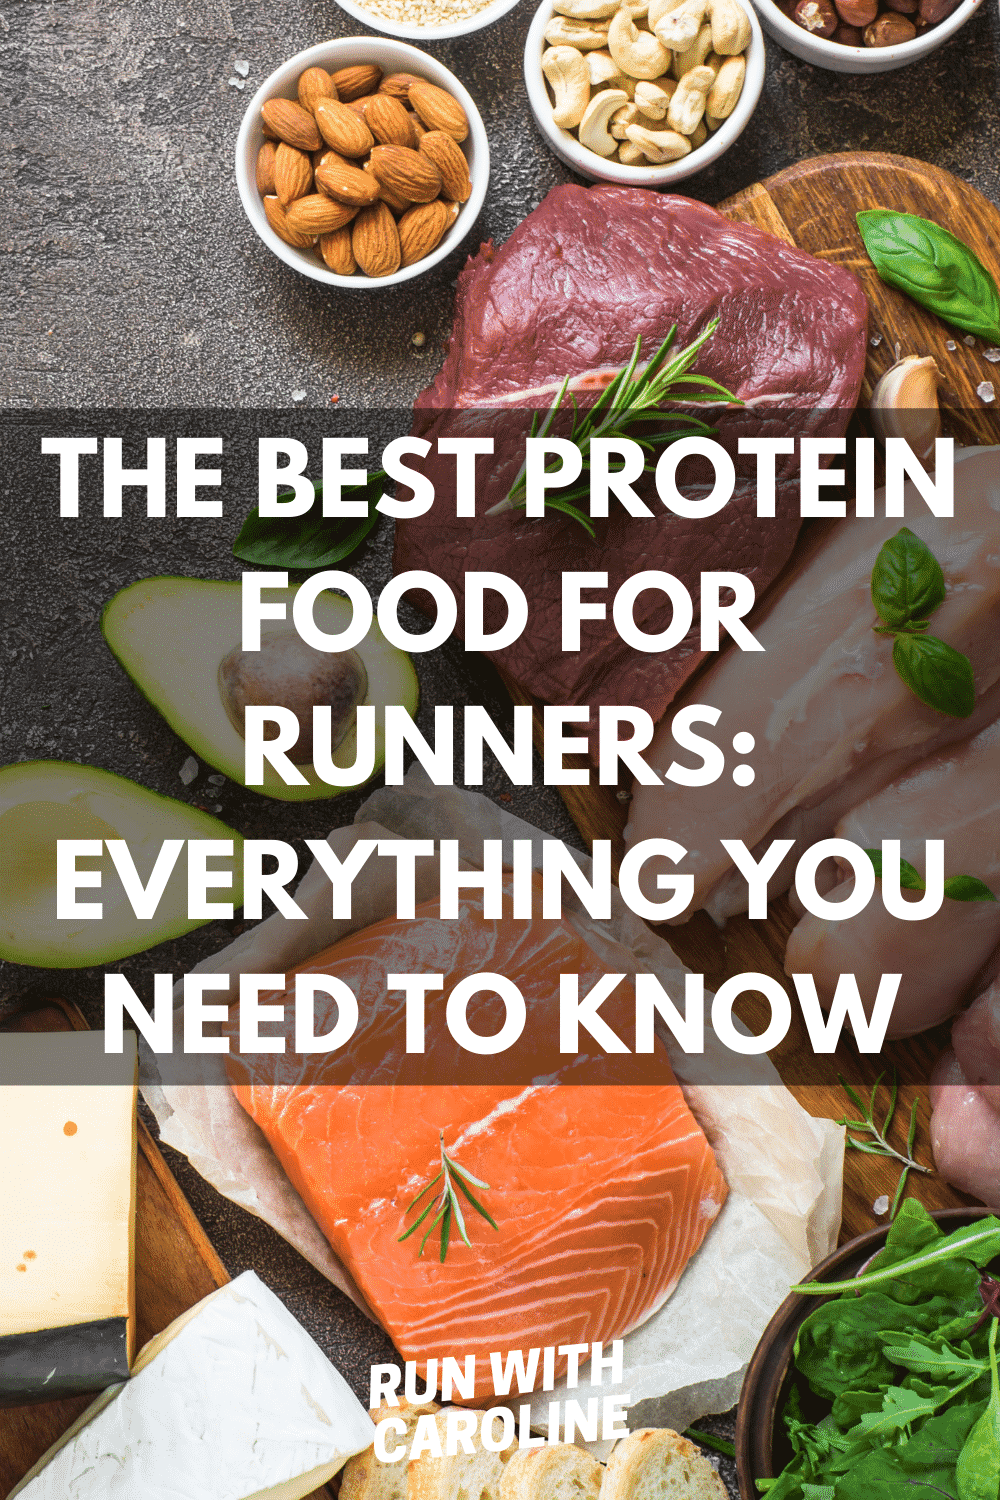 The best protein food for runners: What you should know about protein - Run With Caroline